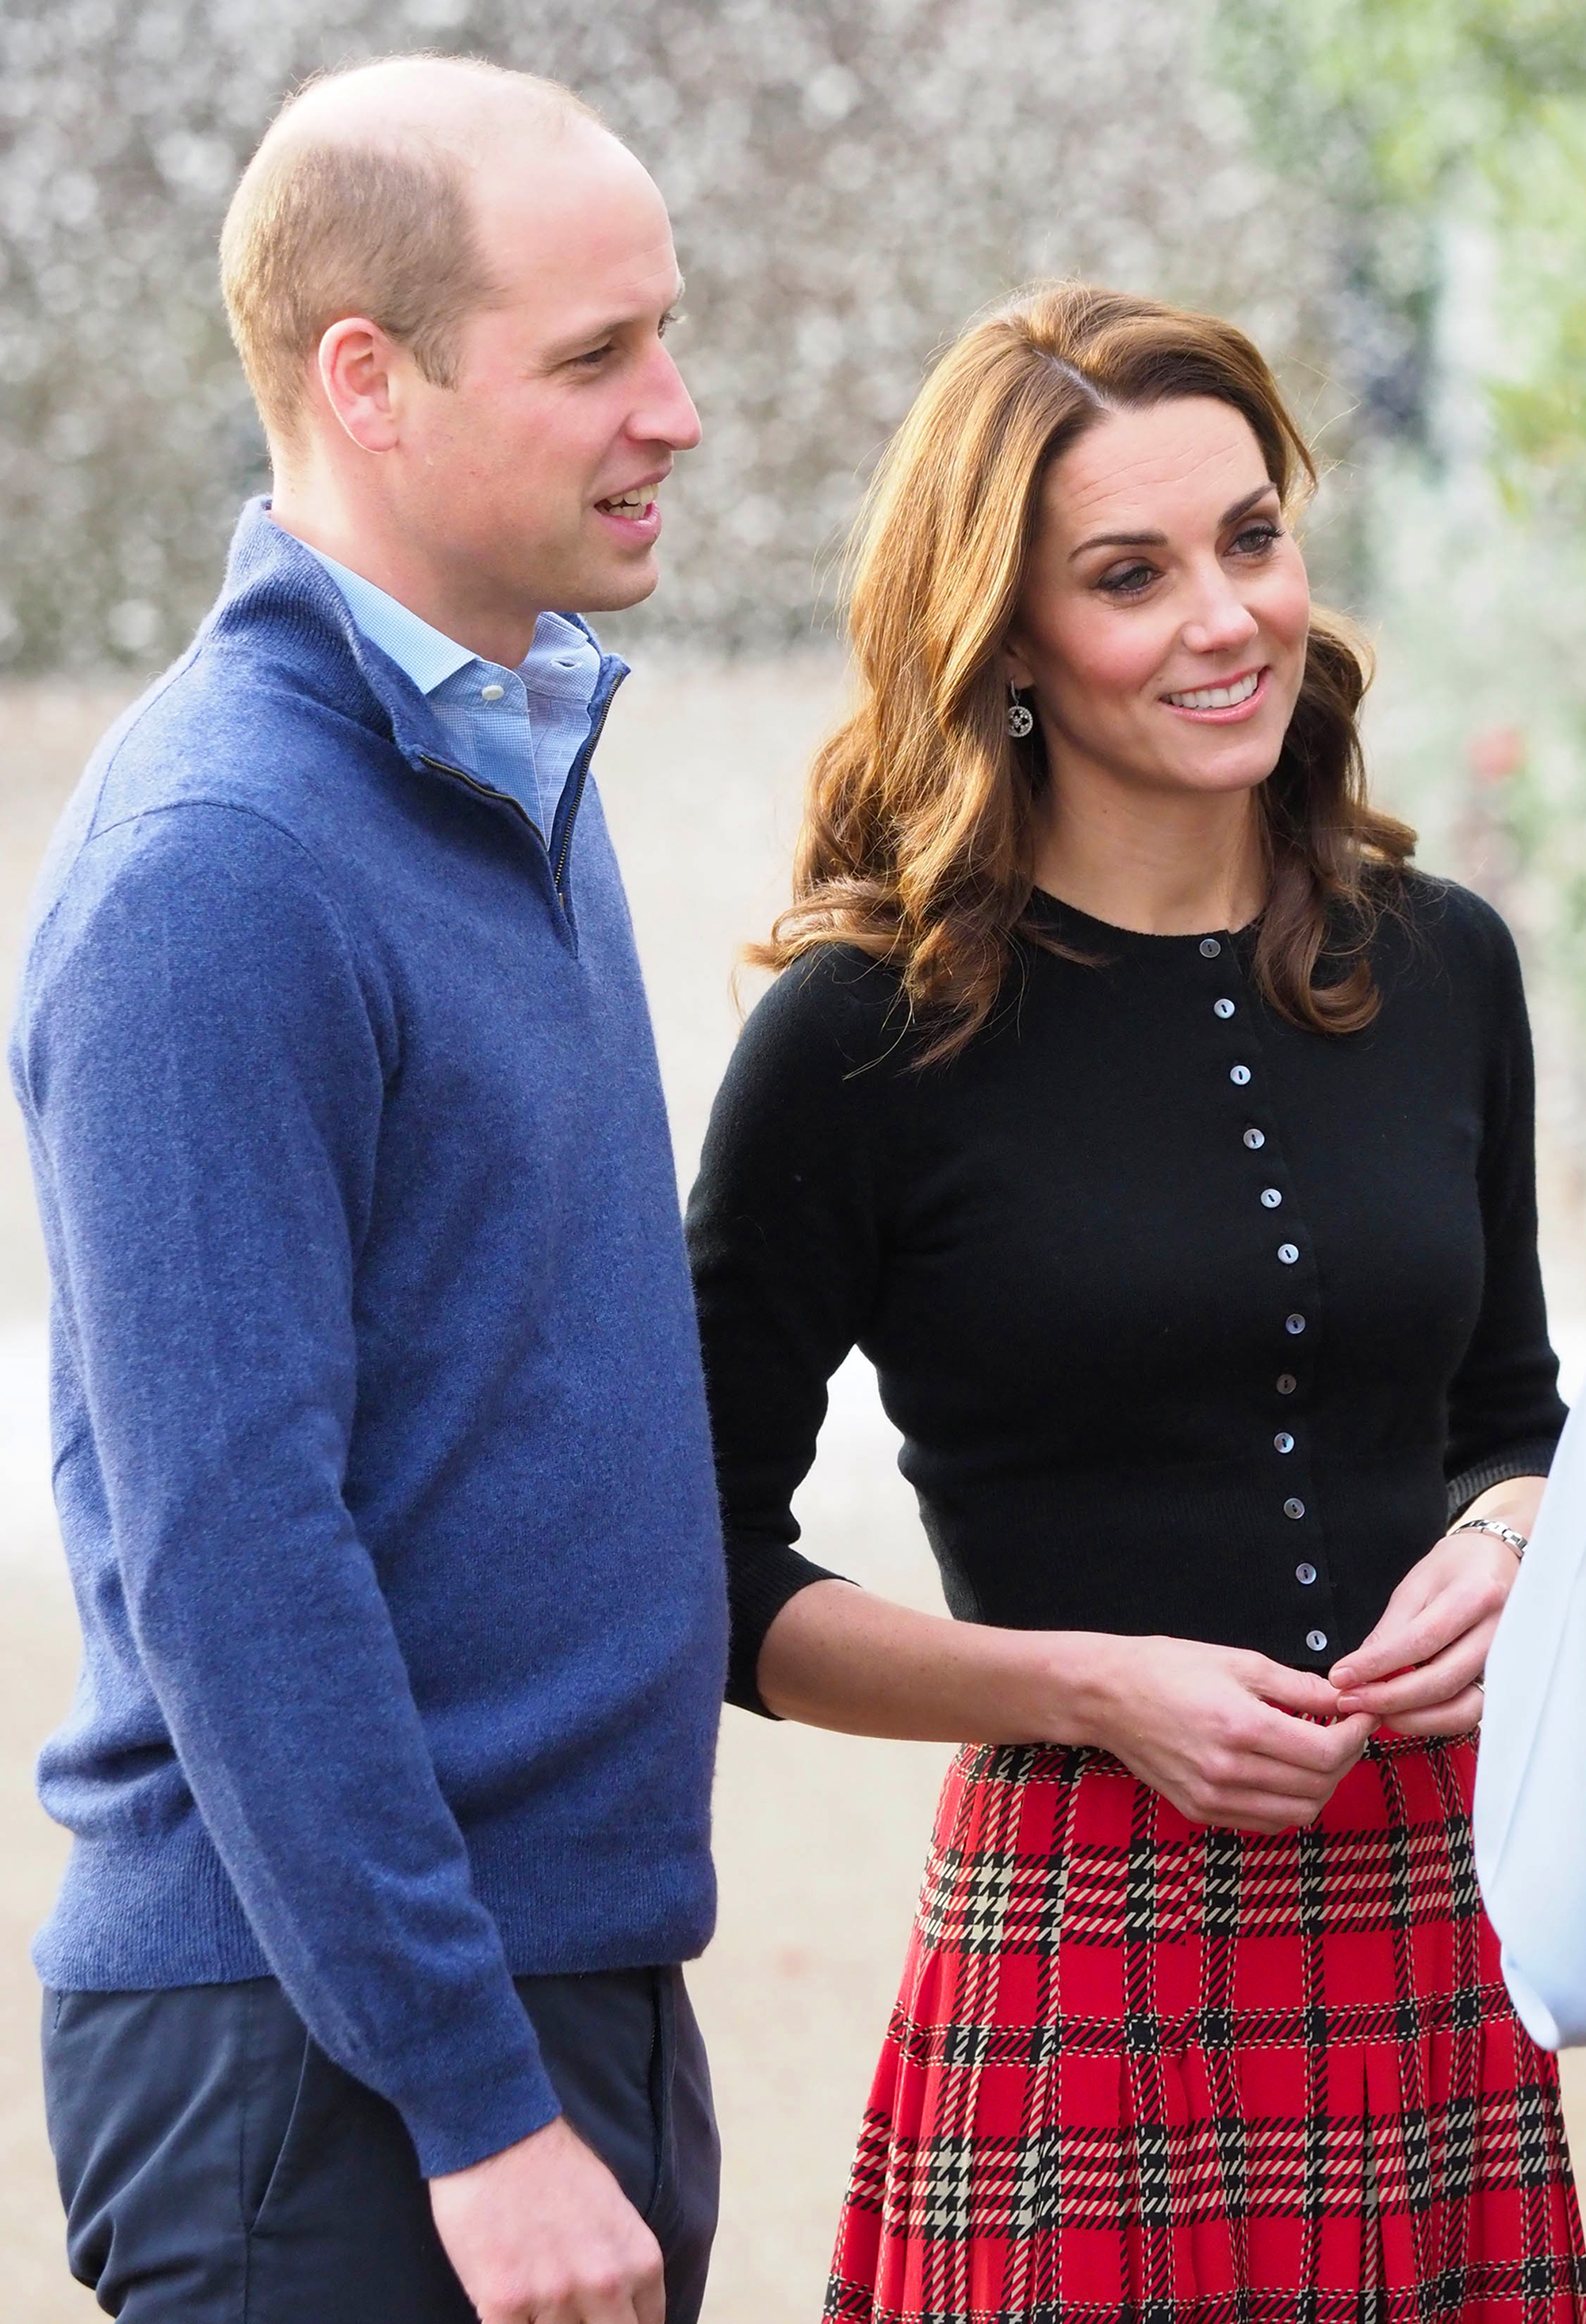 """Royal Family Nicknames - Prince William has been heard calling his wife """"Poppet"""" several times in public, including after they left the hospital with their first son, George, in July 2013."""